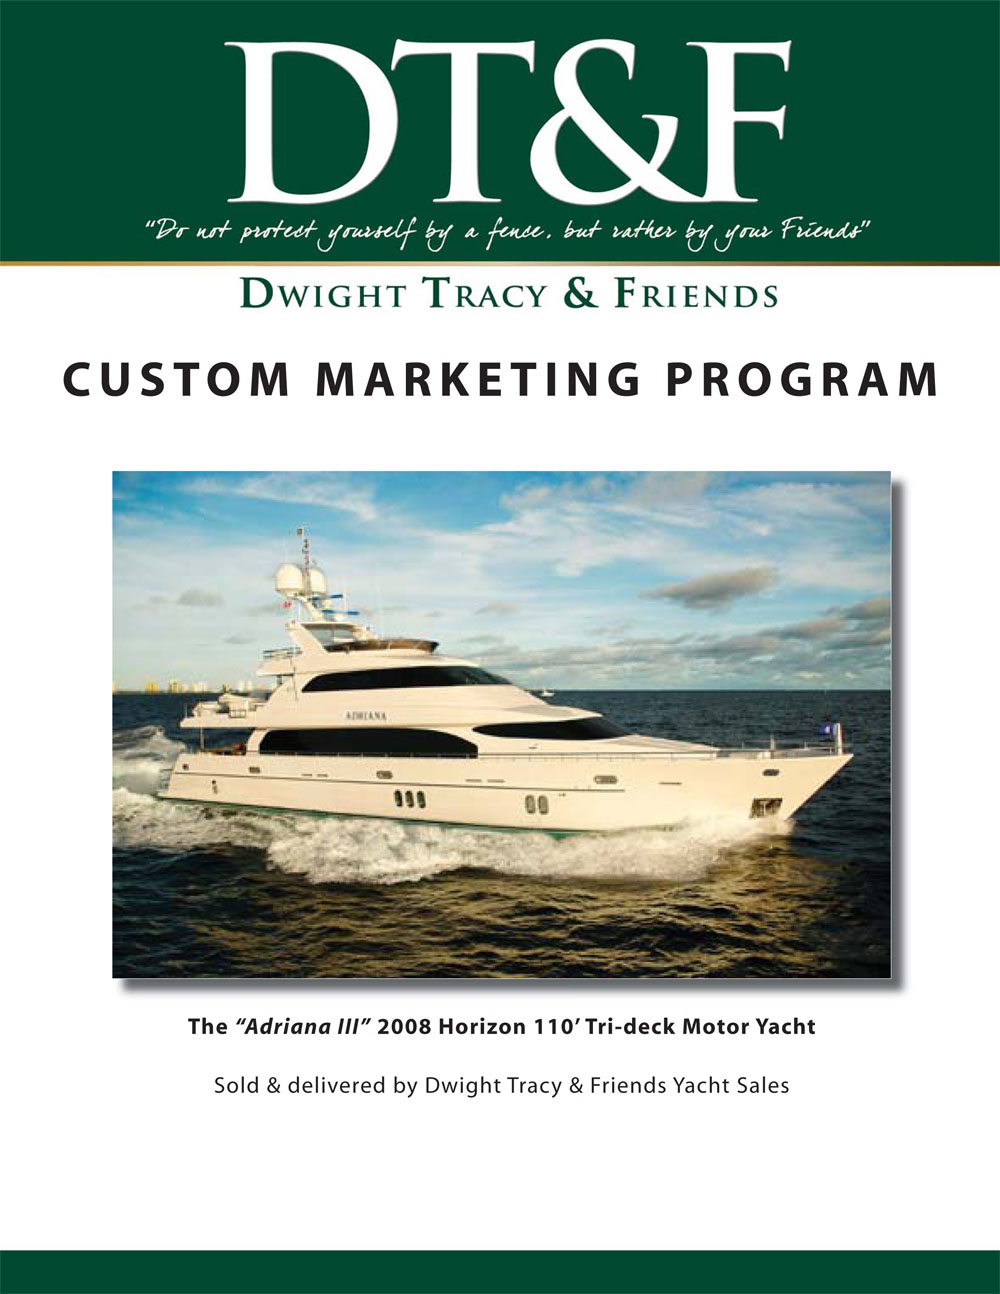 DT&F Yacht Sales Marketing Program picture 1